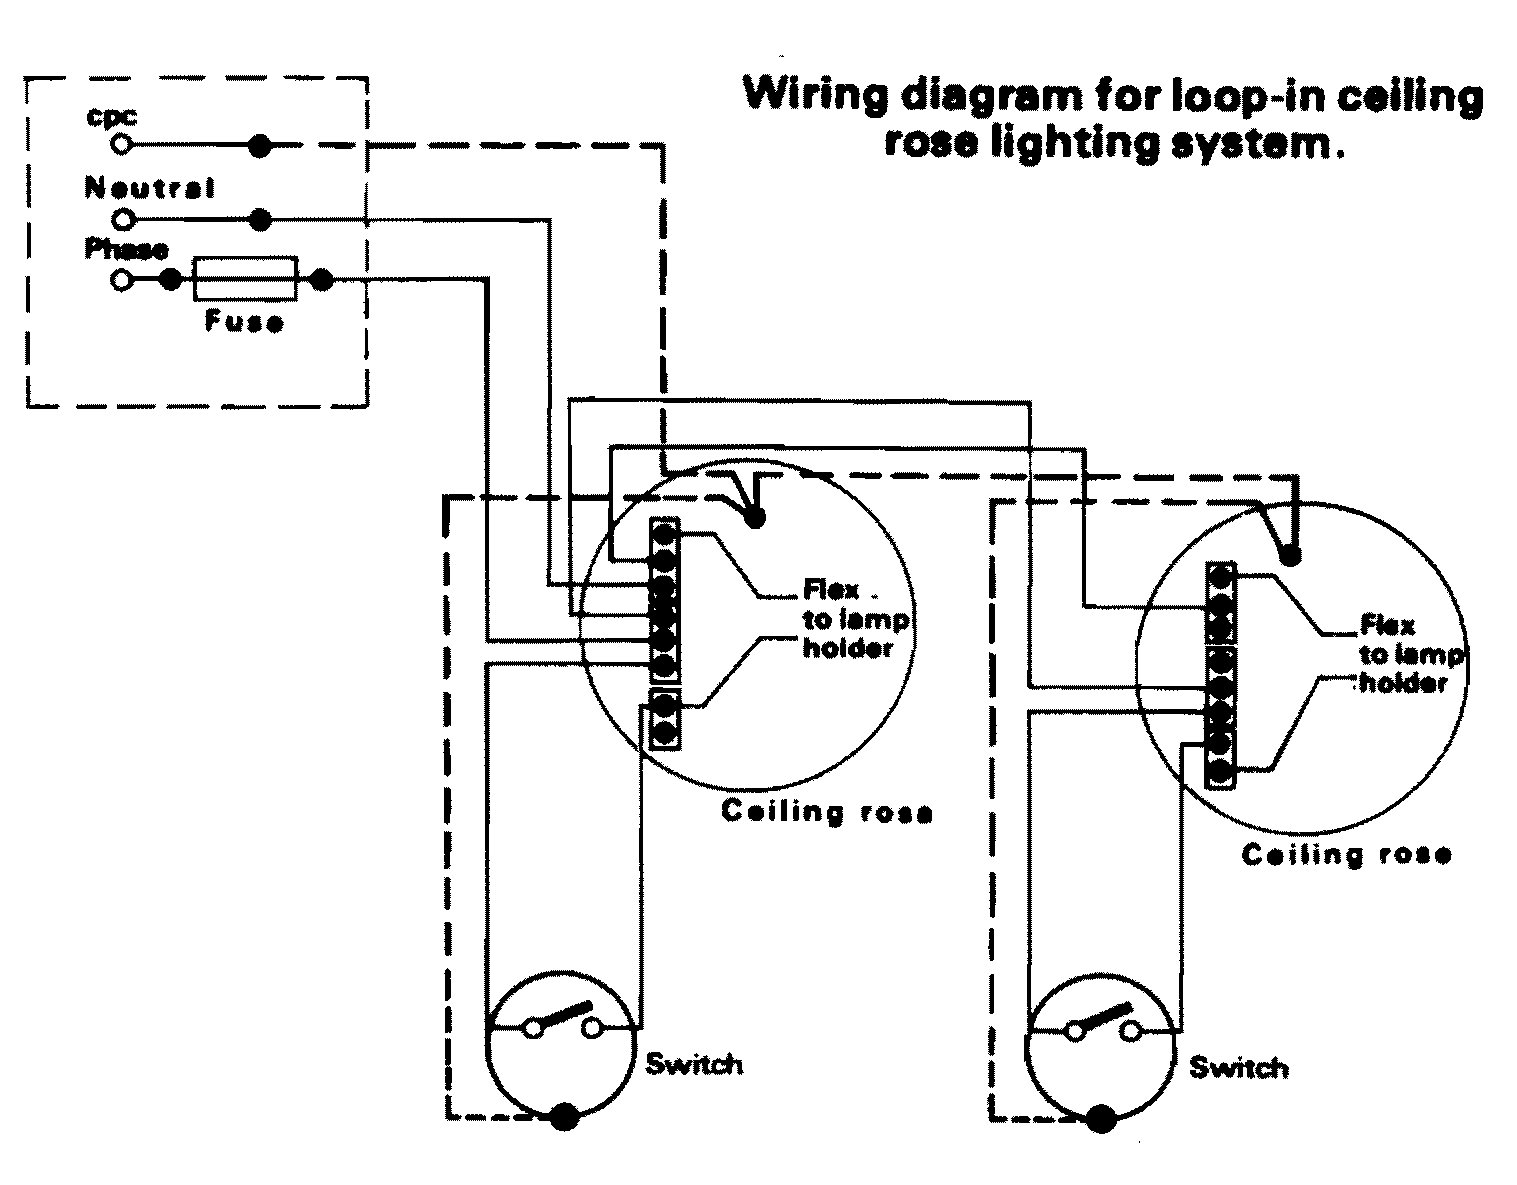 Electrical Loop Diagrams Outlet Wiring For Multiple Wall Outlets Afzal Ranjha Diagram